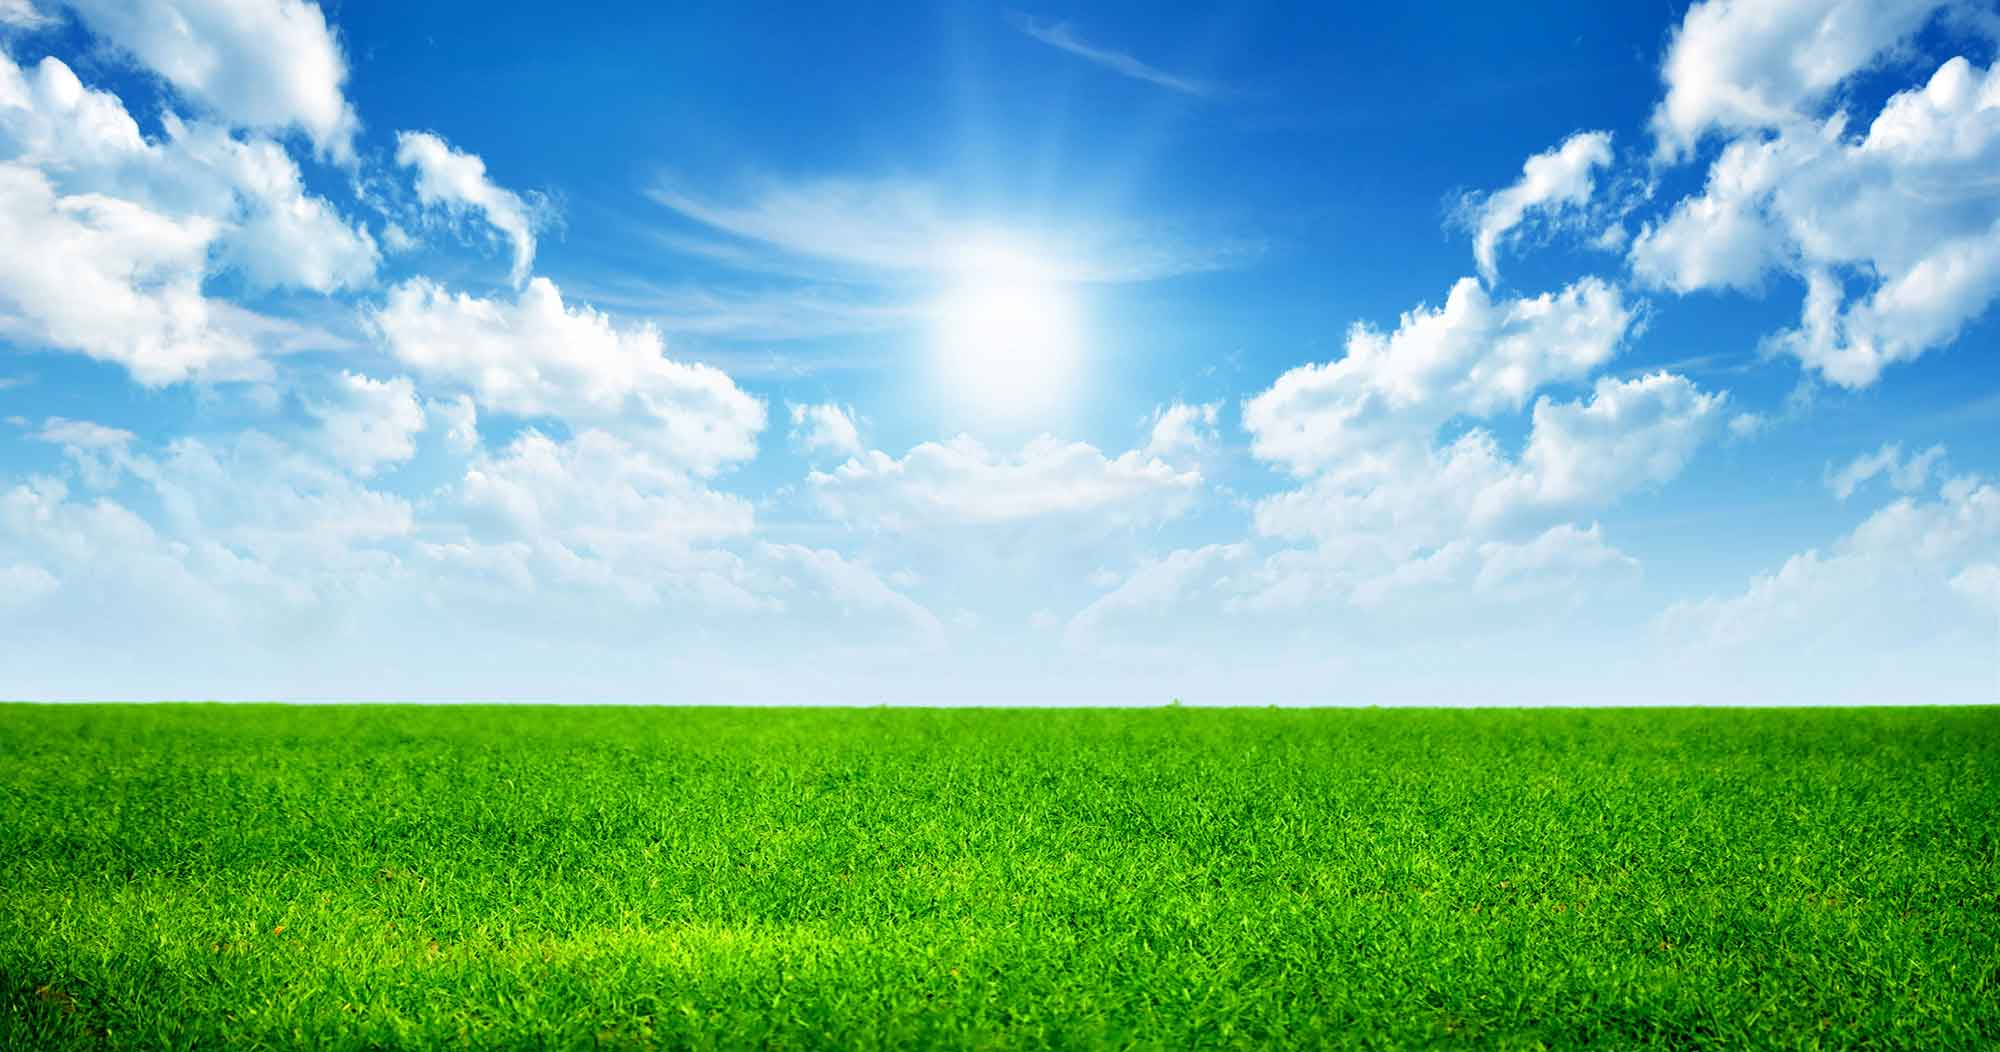 grass and sky png free grass and sky png transparent images 63297 pngio grass and sky png transparent